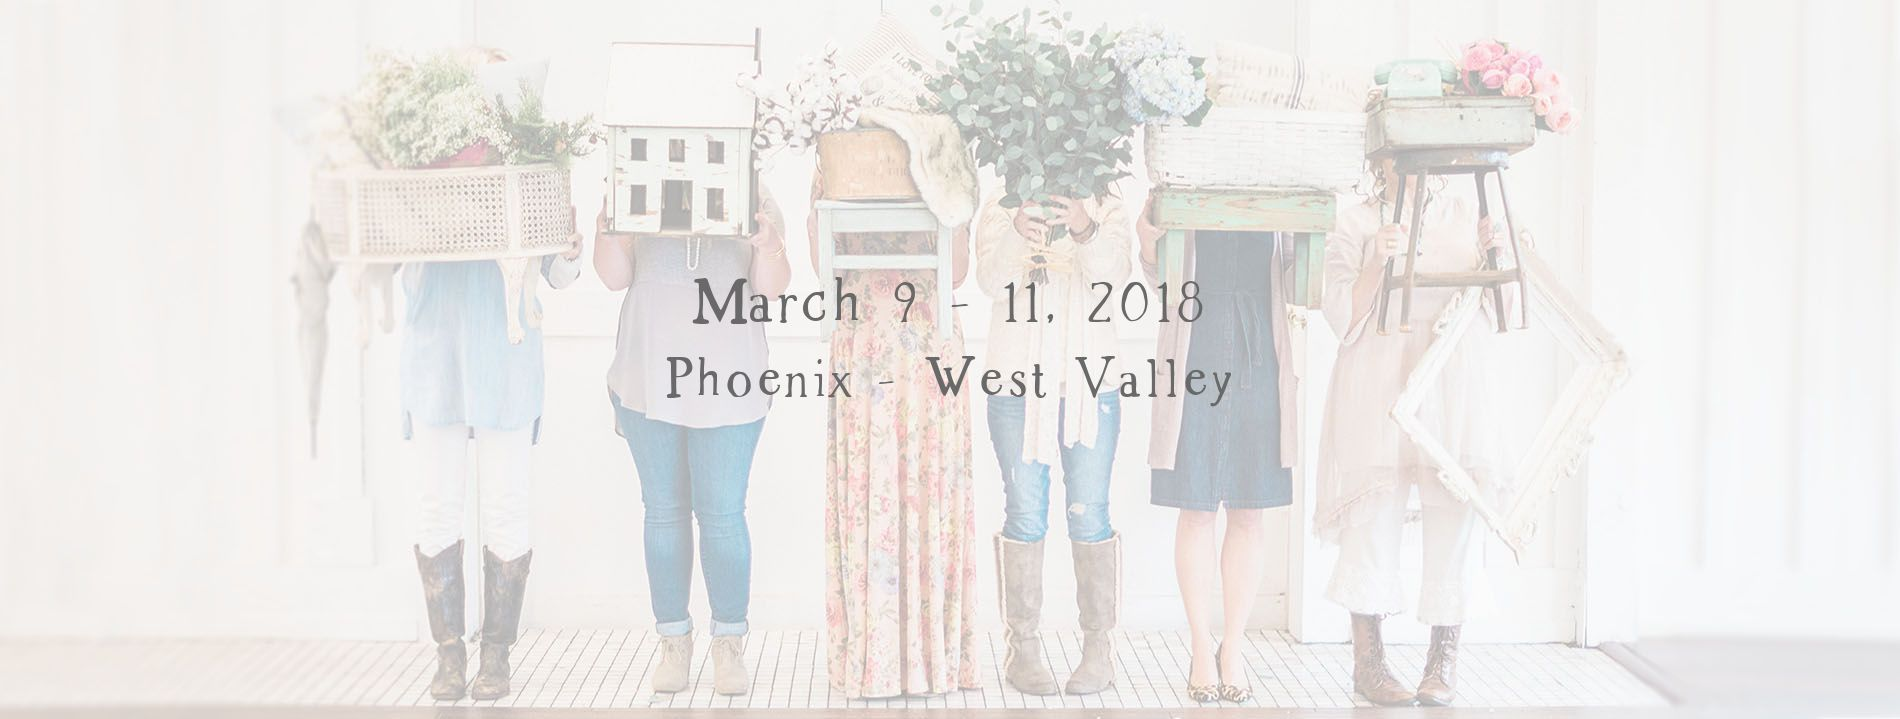 Phoenix - West Valley